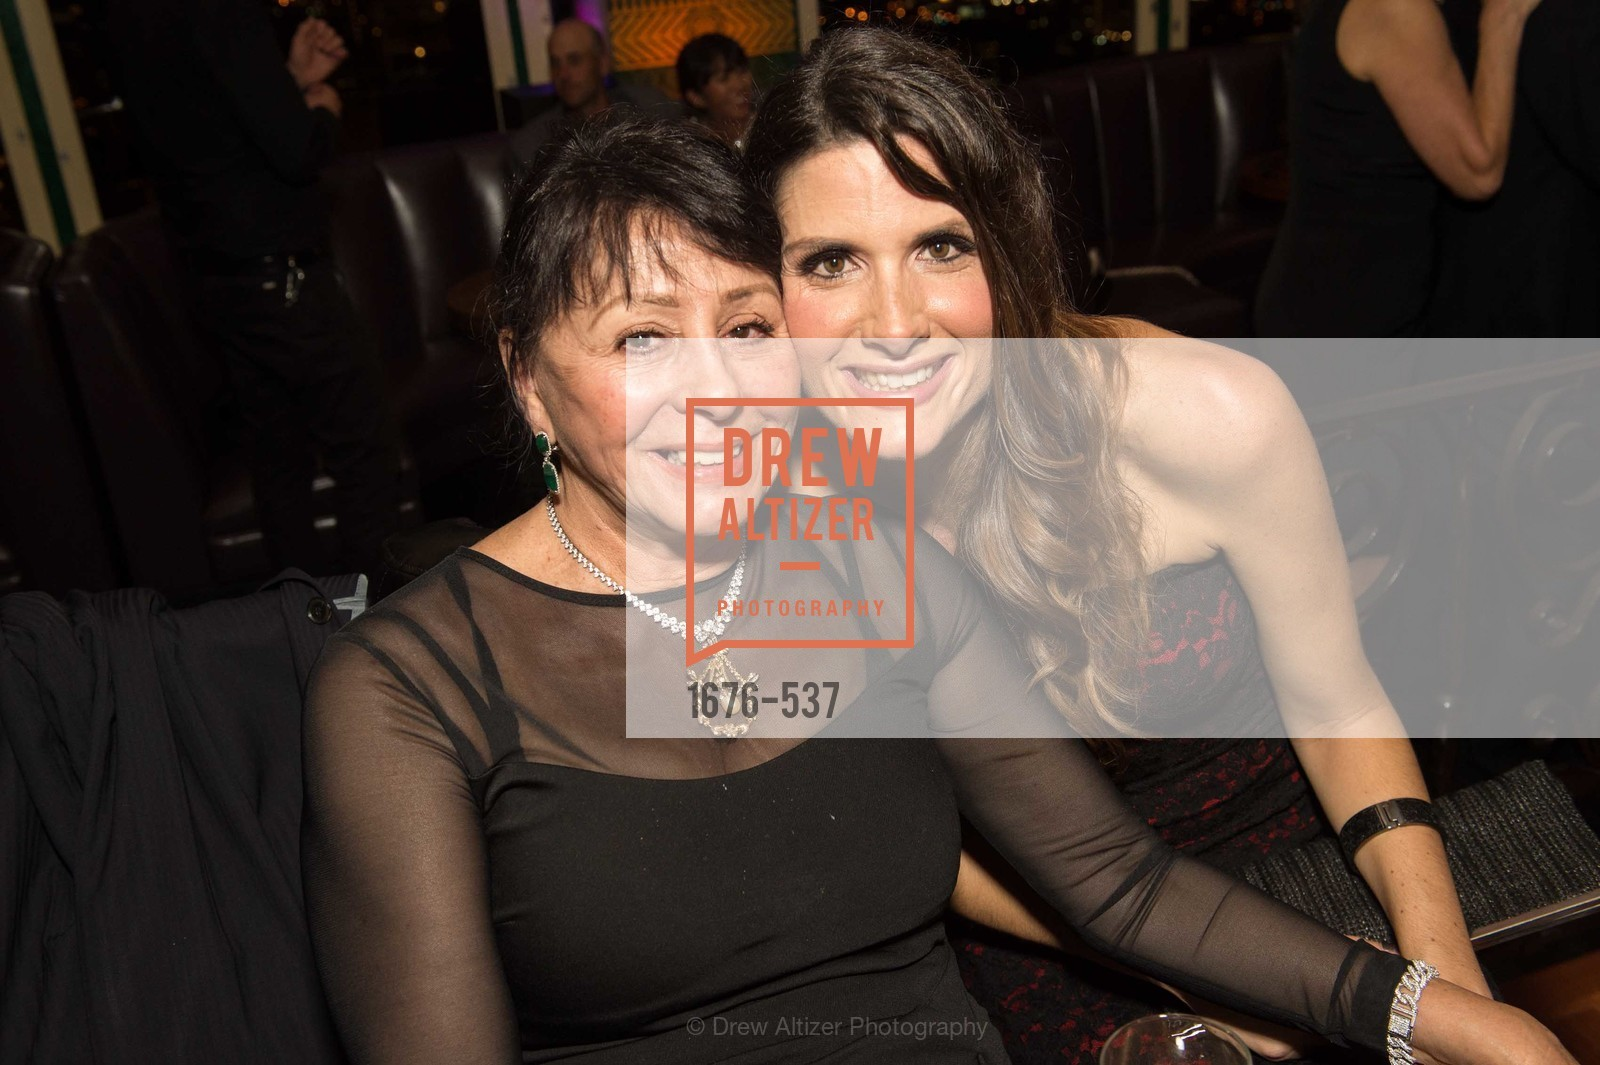 Maria Miguels, Monica Gookins, TOP OF THE MARK'S 75TH Anniversary Party, US, November 7th, 2014,Drew Altizer, Drew Altizer Photography, full-service agency, private events, San Francisco photographer, photographer california